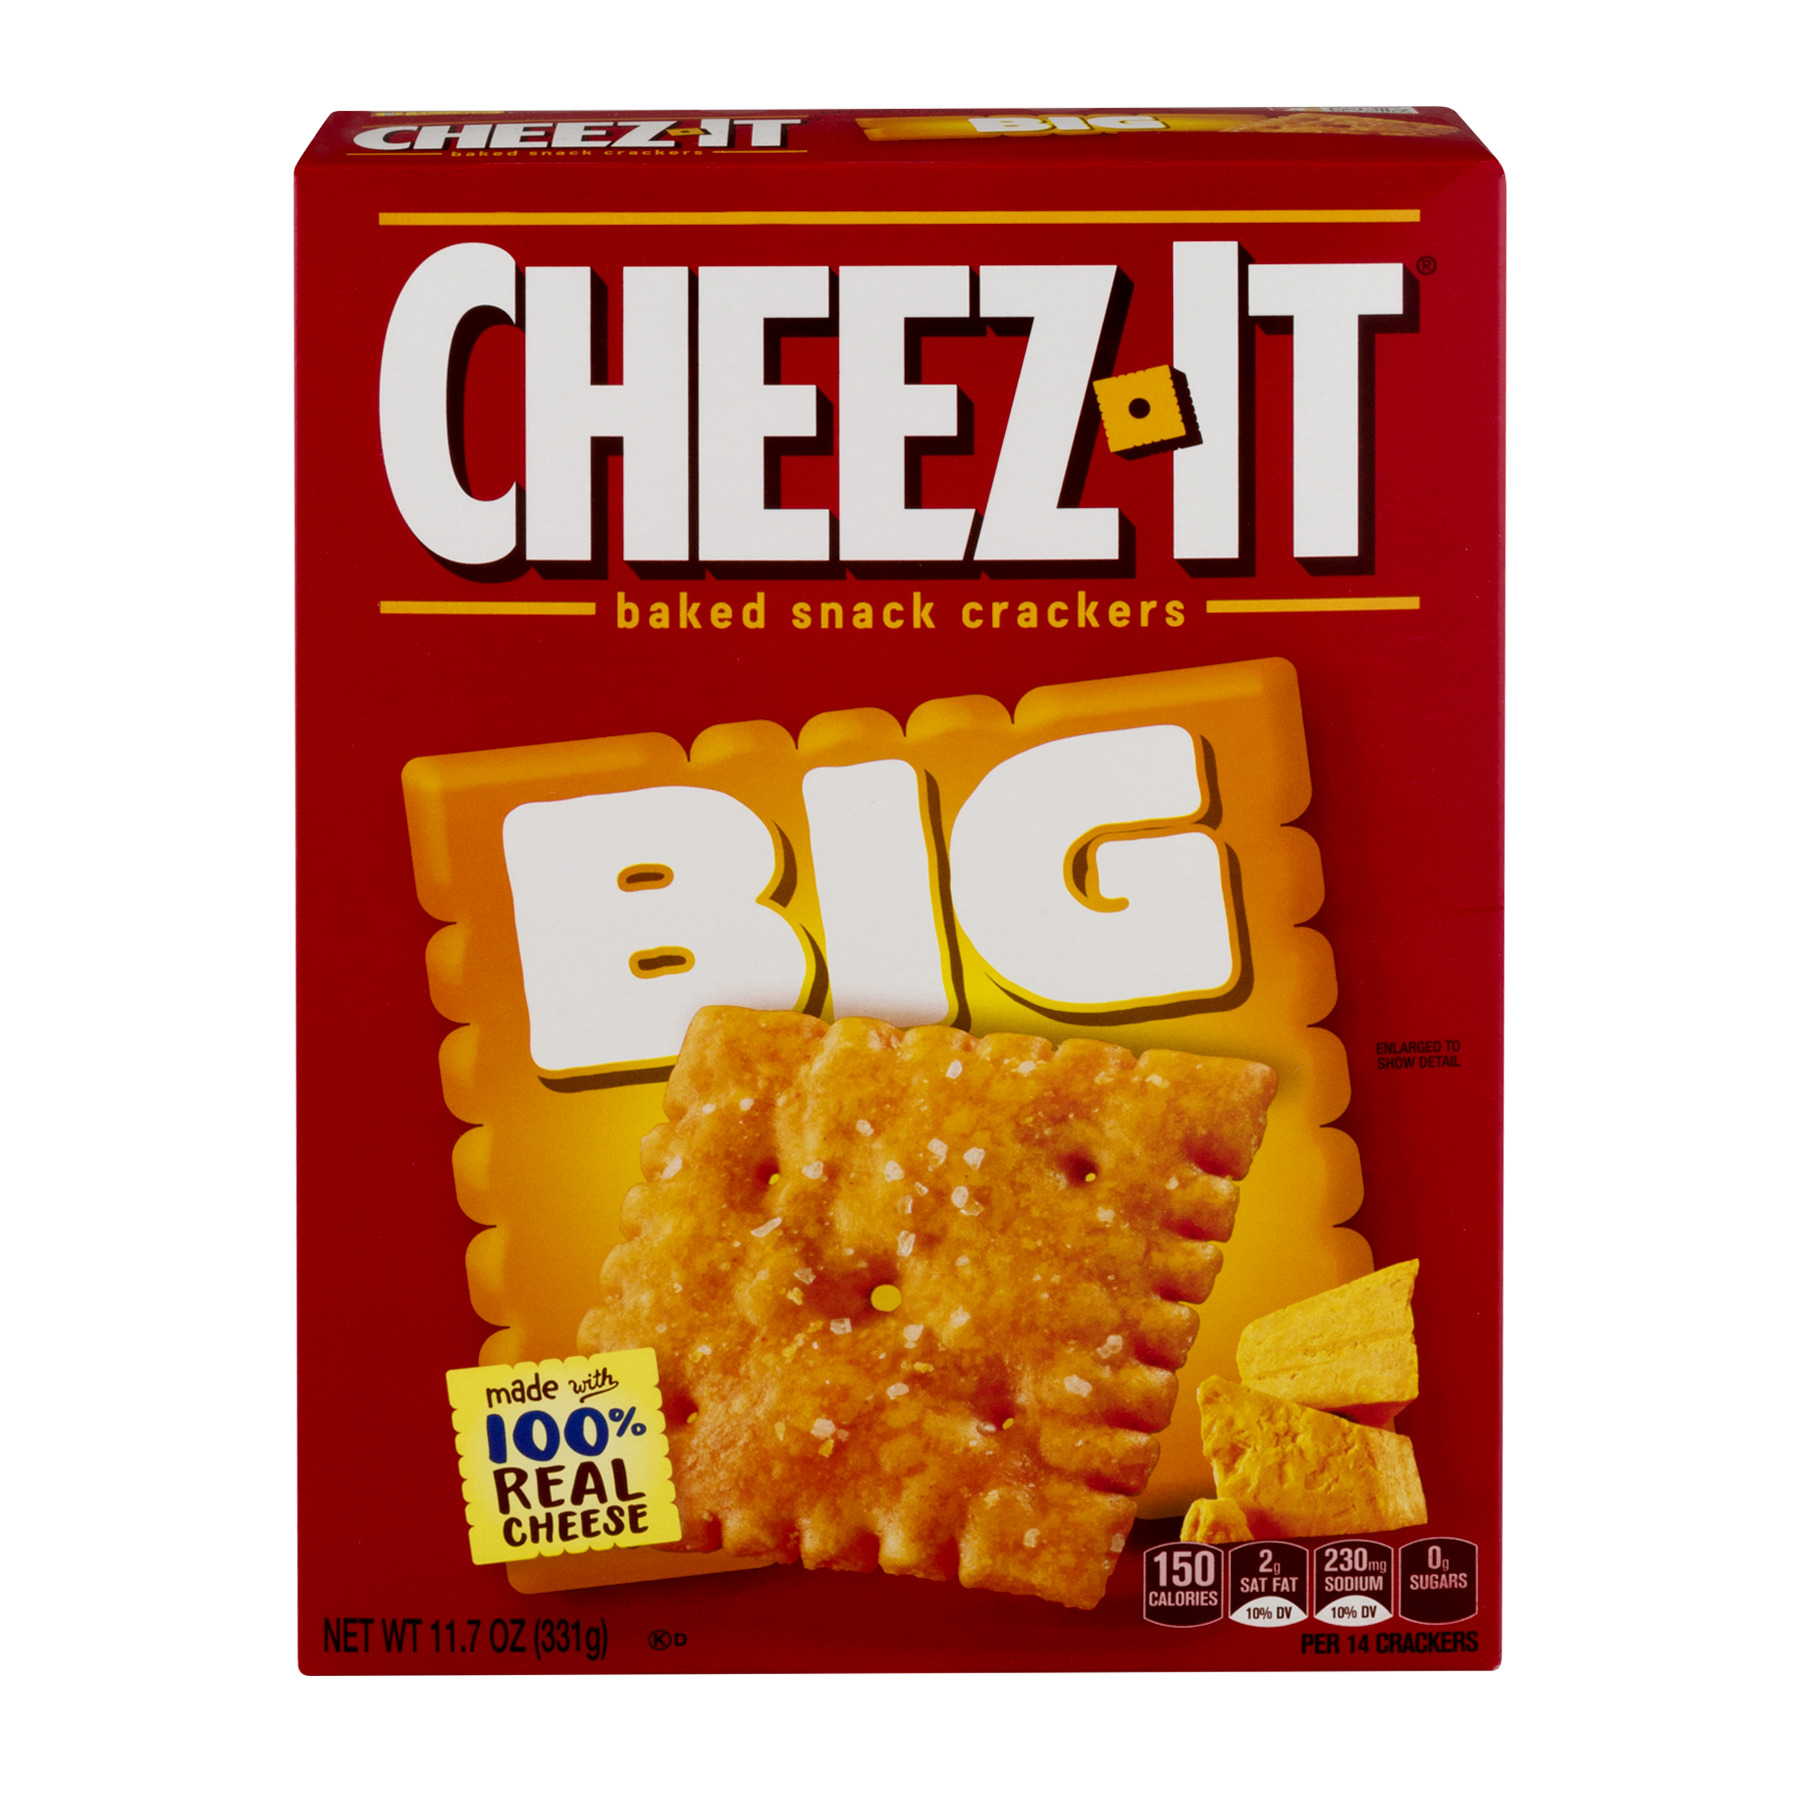 Cheez-It Baked Snack Crackers Big, 11.7 OZ by Kellogg Company